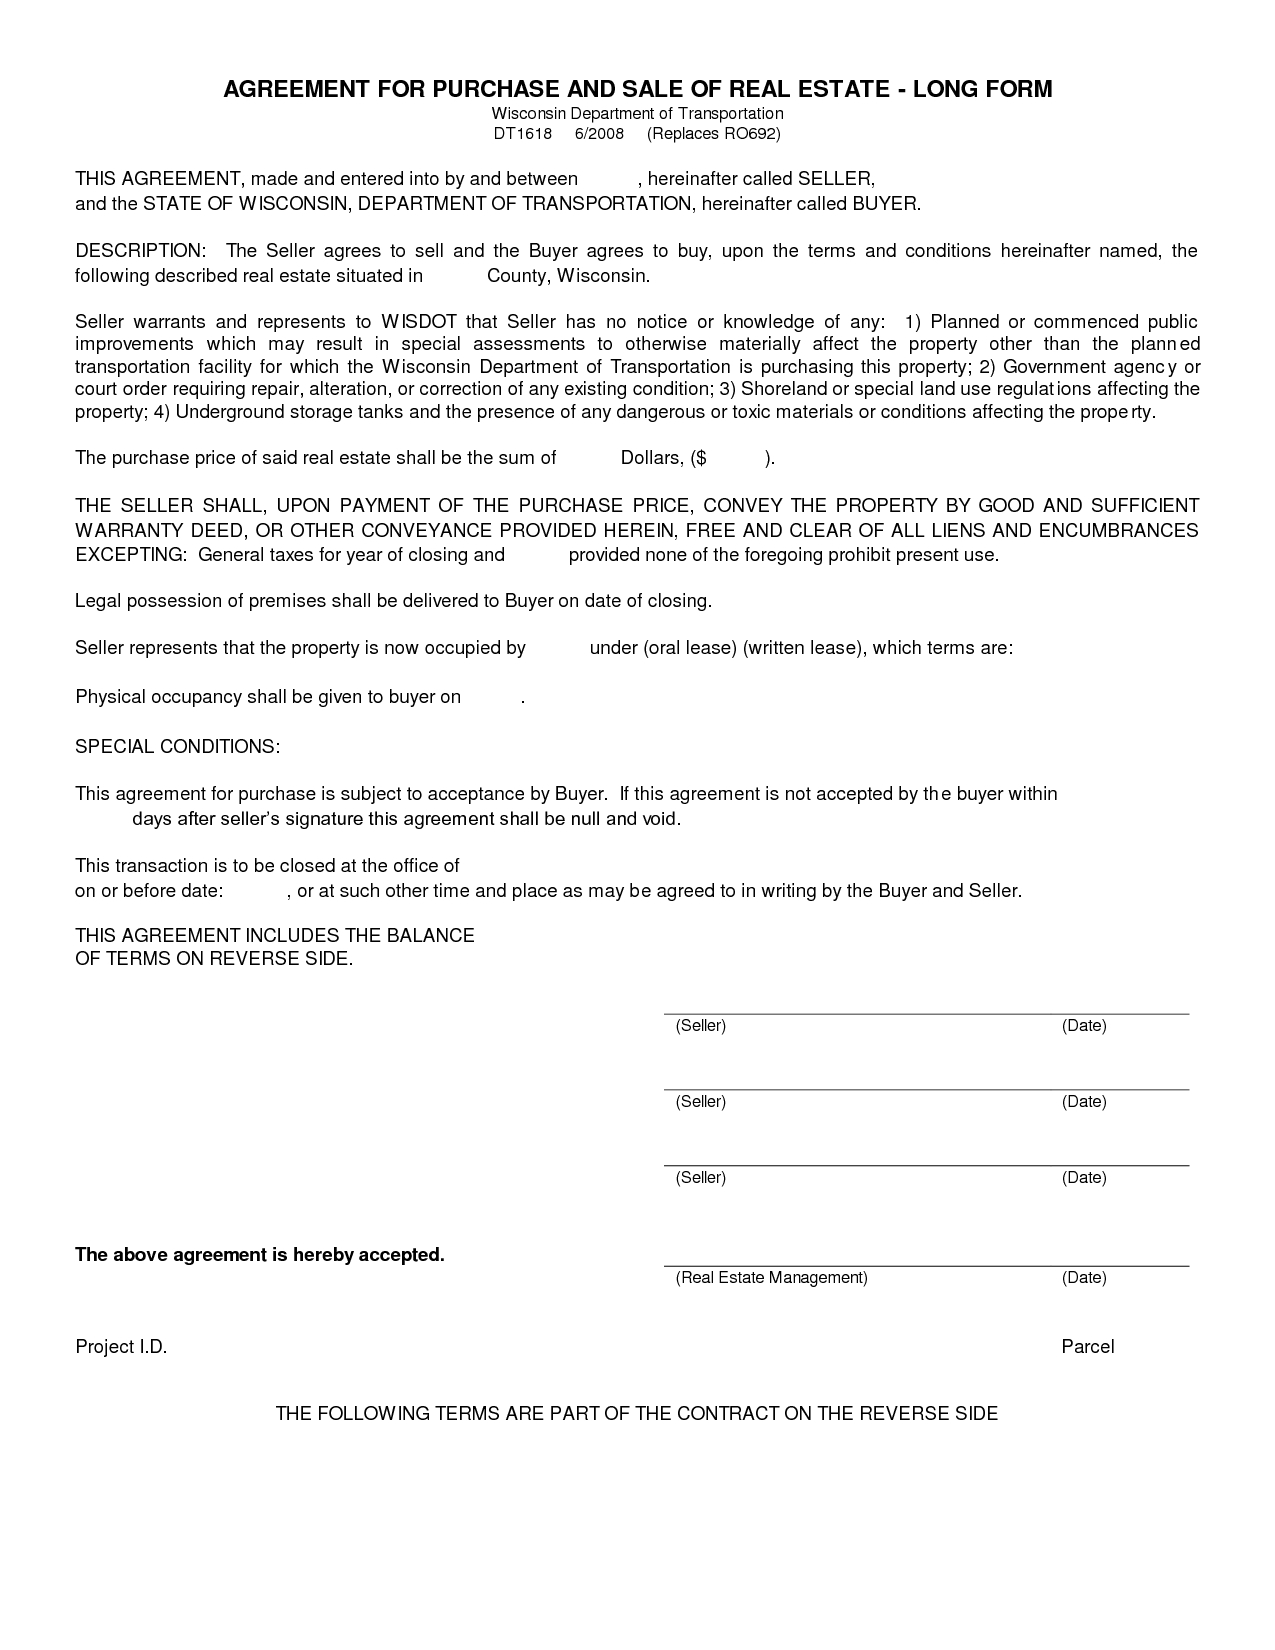 Free Blank Purchase Agreement Form Images - Agreement To Purchase - Free Printable Land Contract Forms